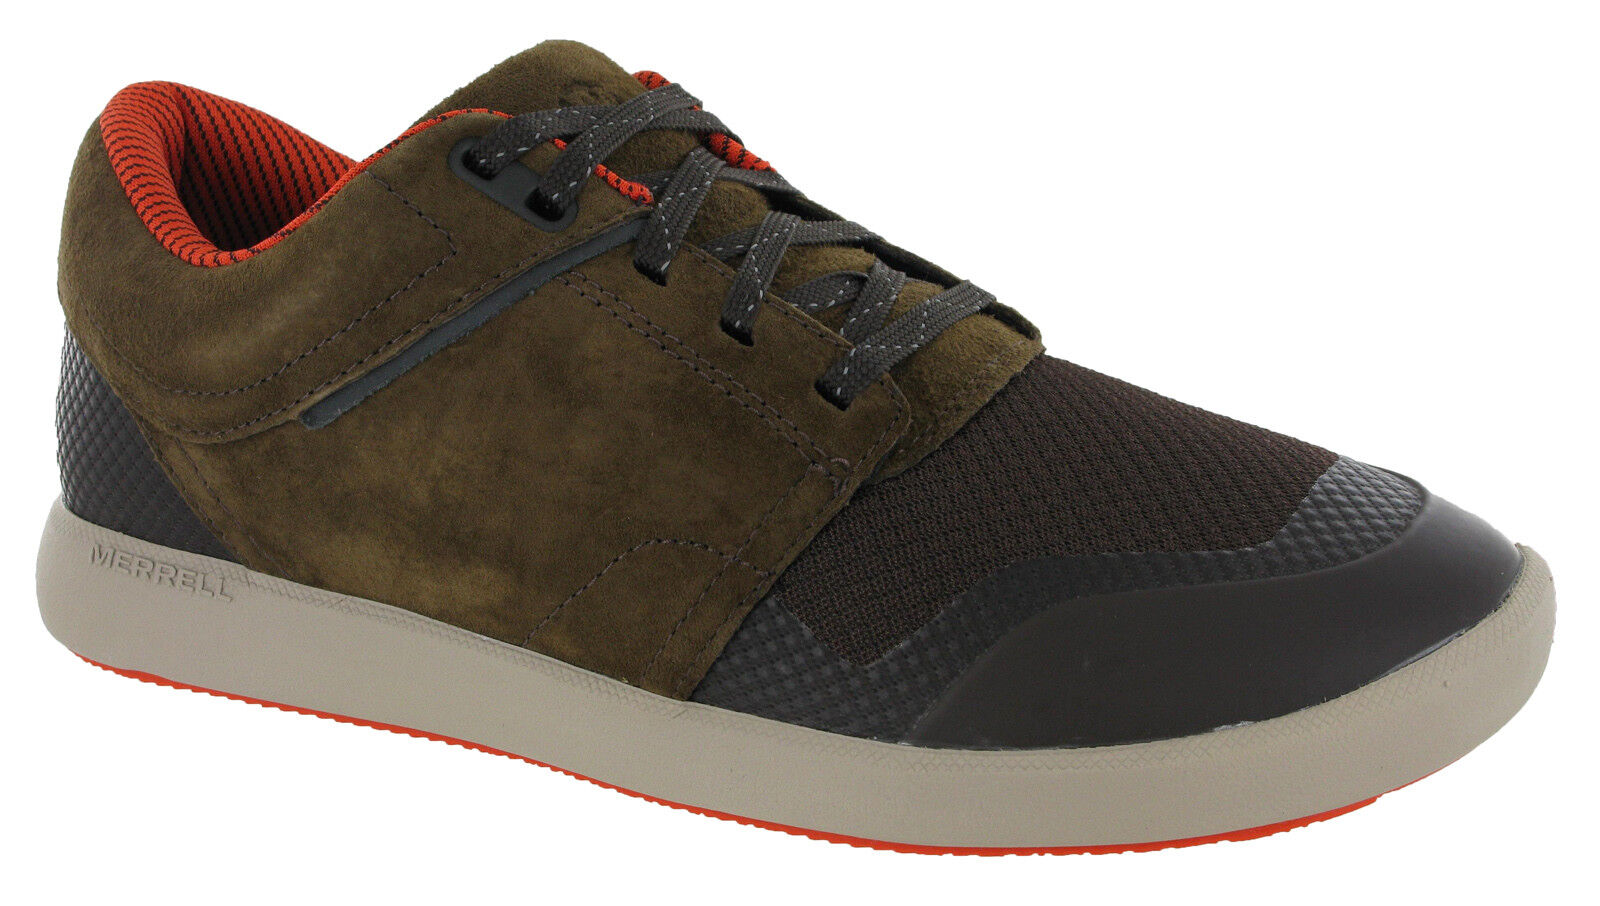 216efd40e5c Merrell Freewheel Infuse Lace Stylish J91947 Comfort Trainers Mens Casual  nocoxy897-Athletic Shoes